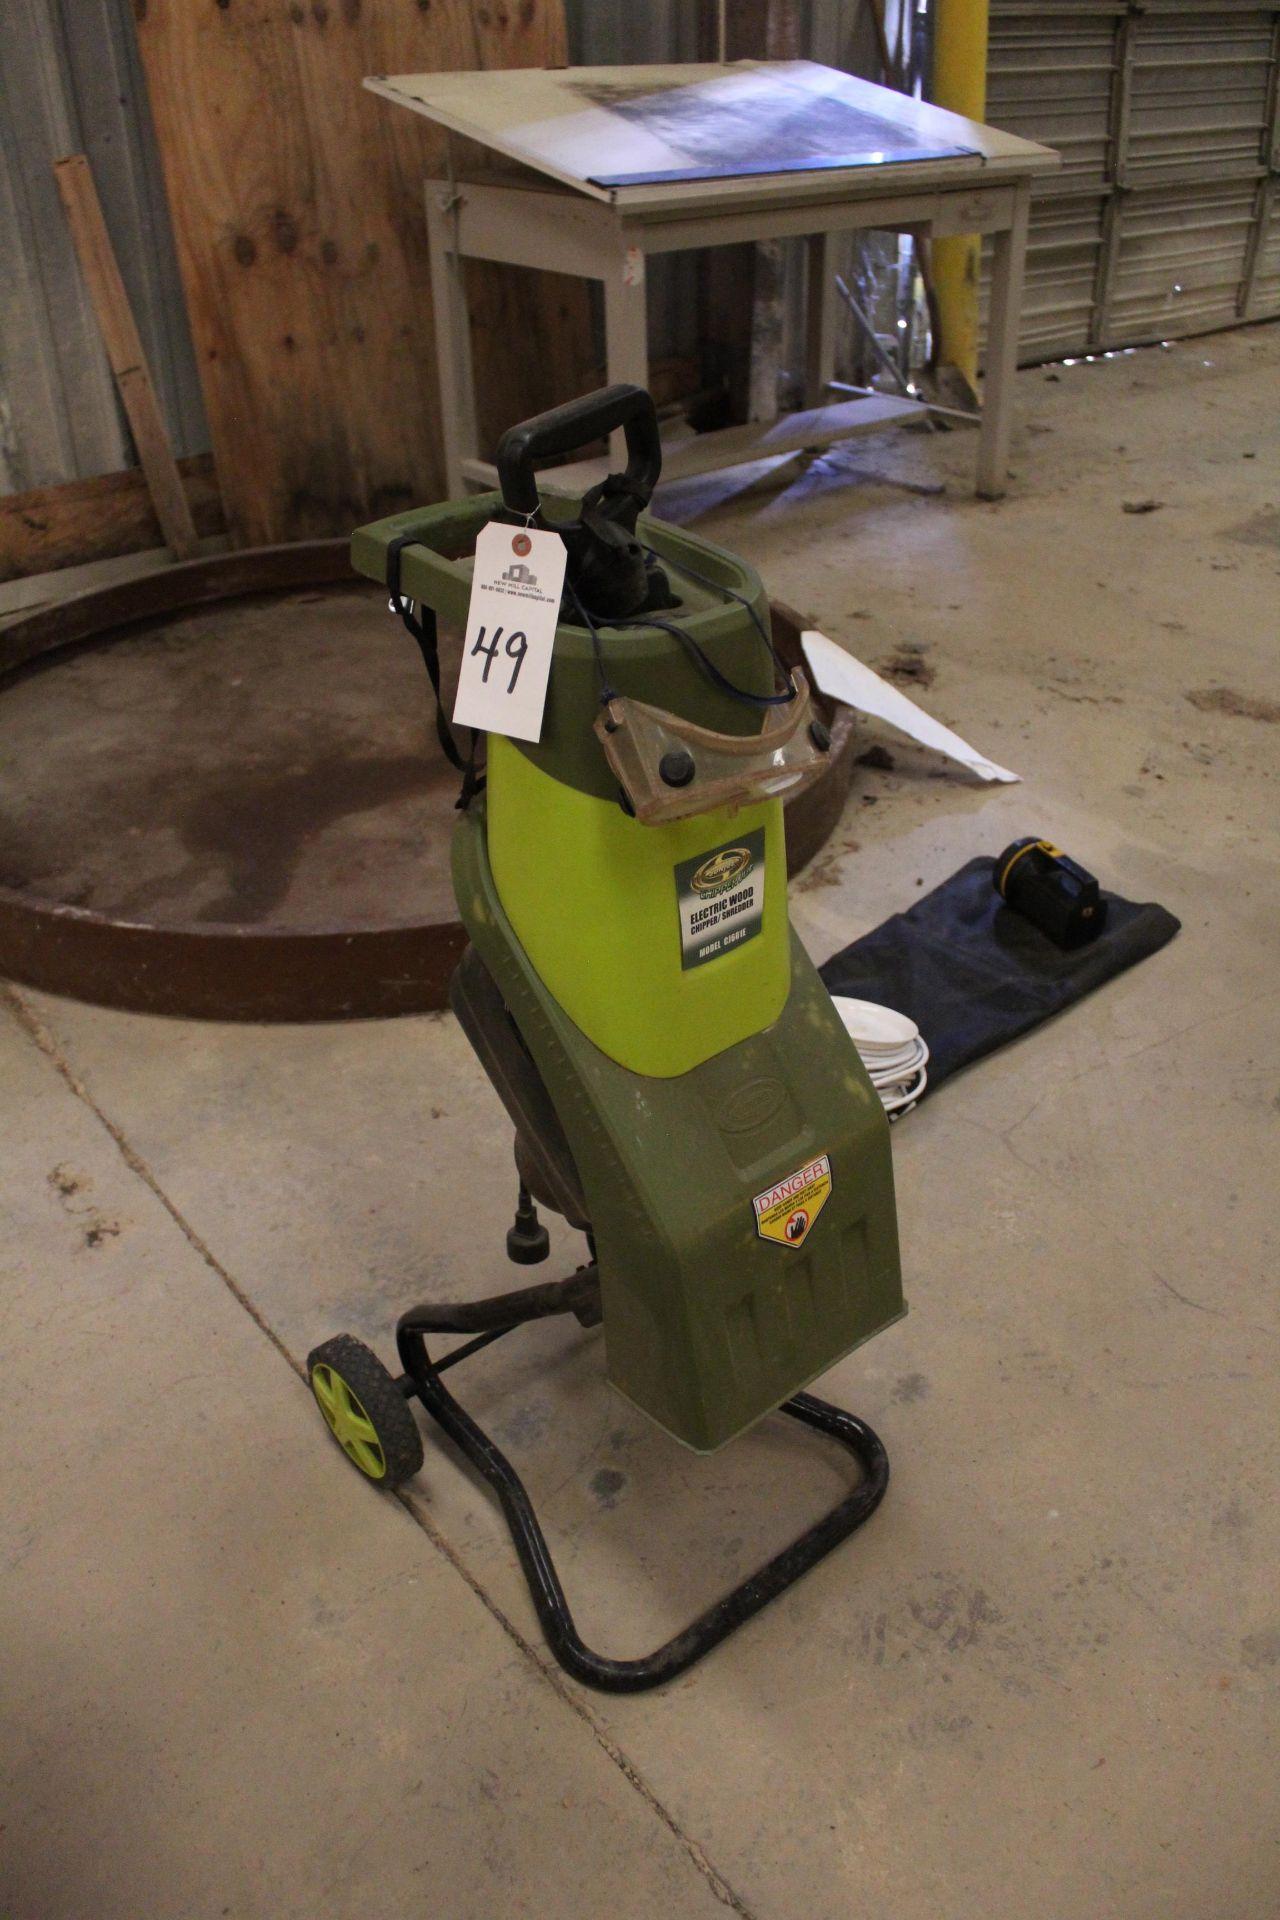 Sunjoe Electric Wood Chipper | Rig Fee: Hand Carry or Contact Rigger